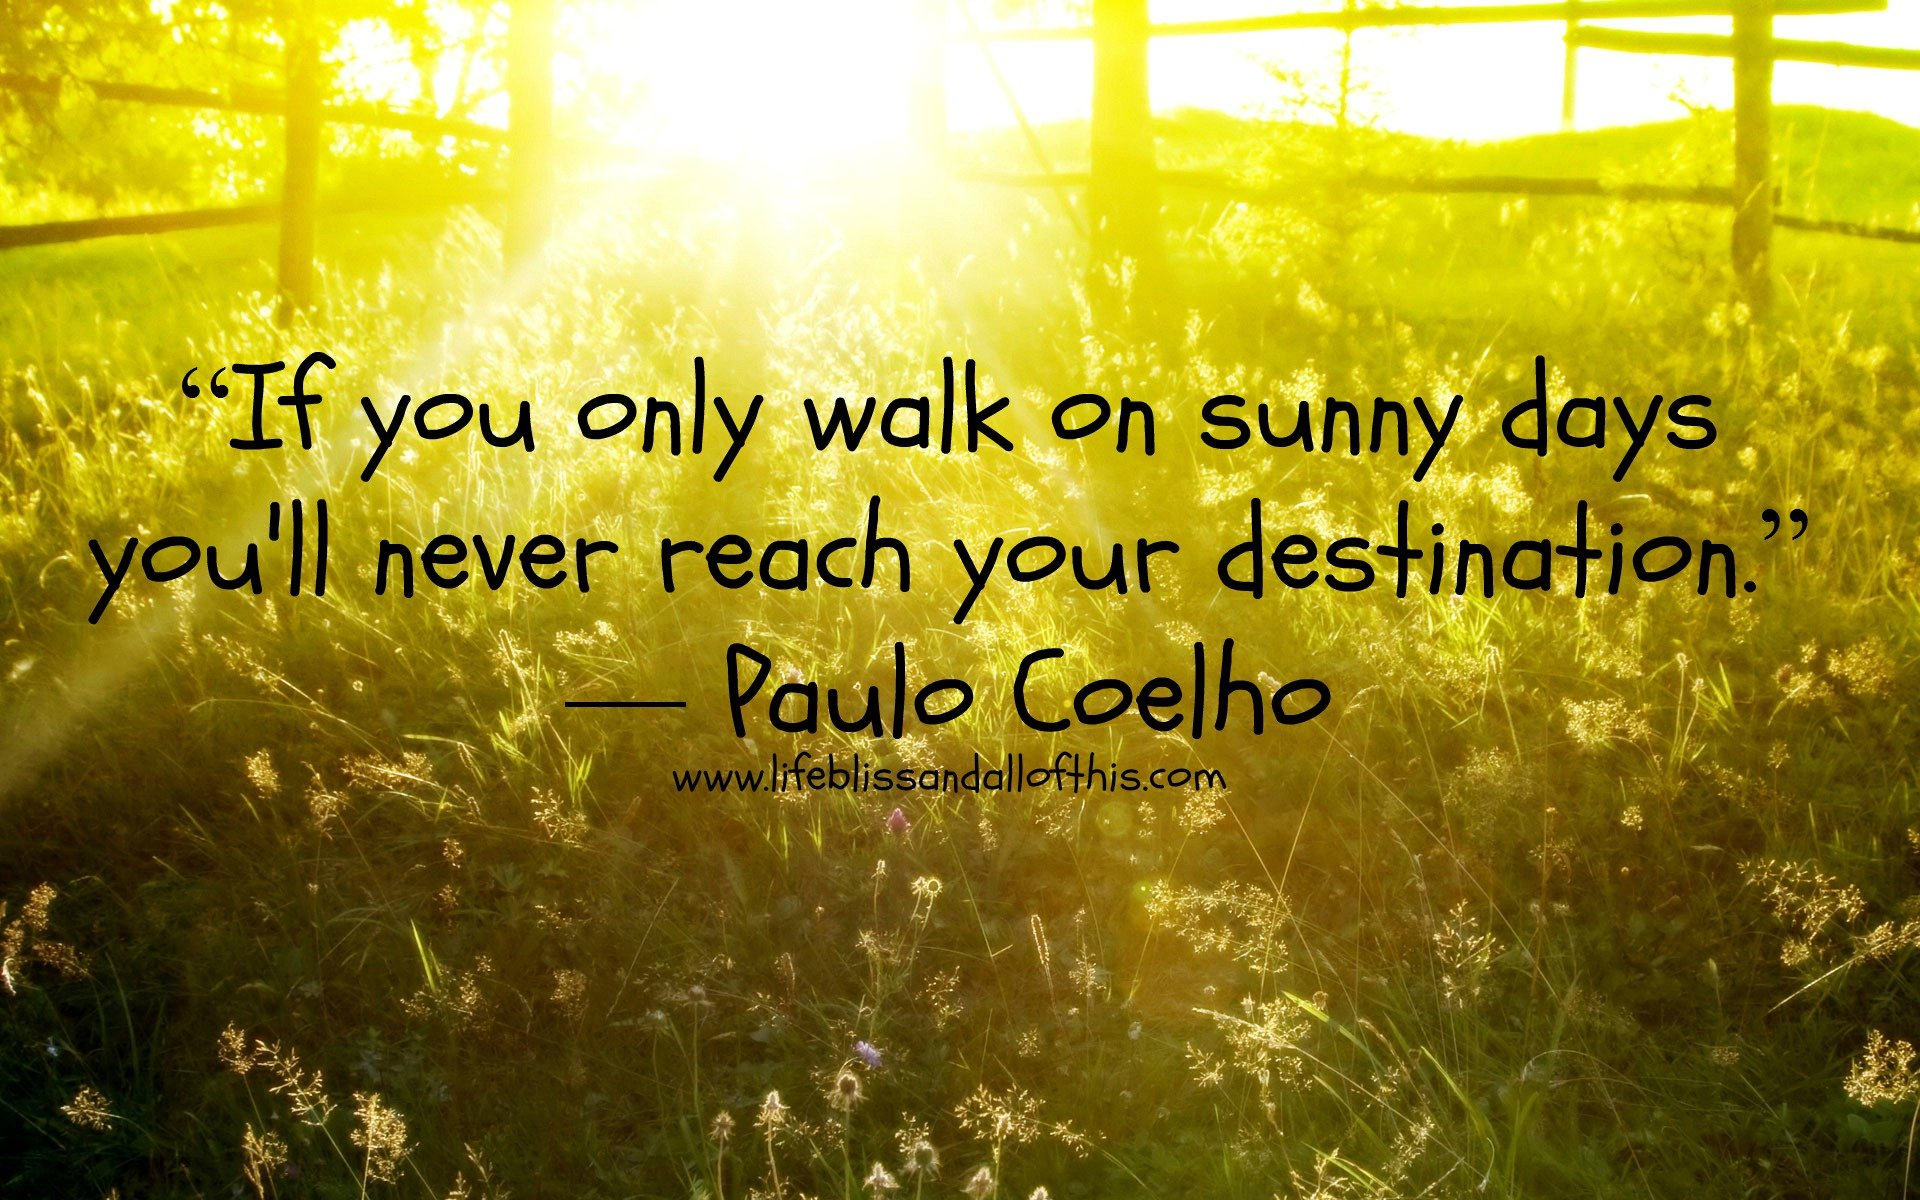 Inspirational Day Quotes: Sunny Day Inspirational Quotes. QuotesGram